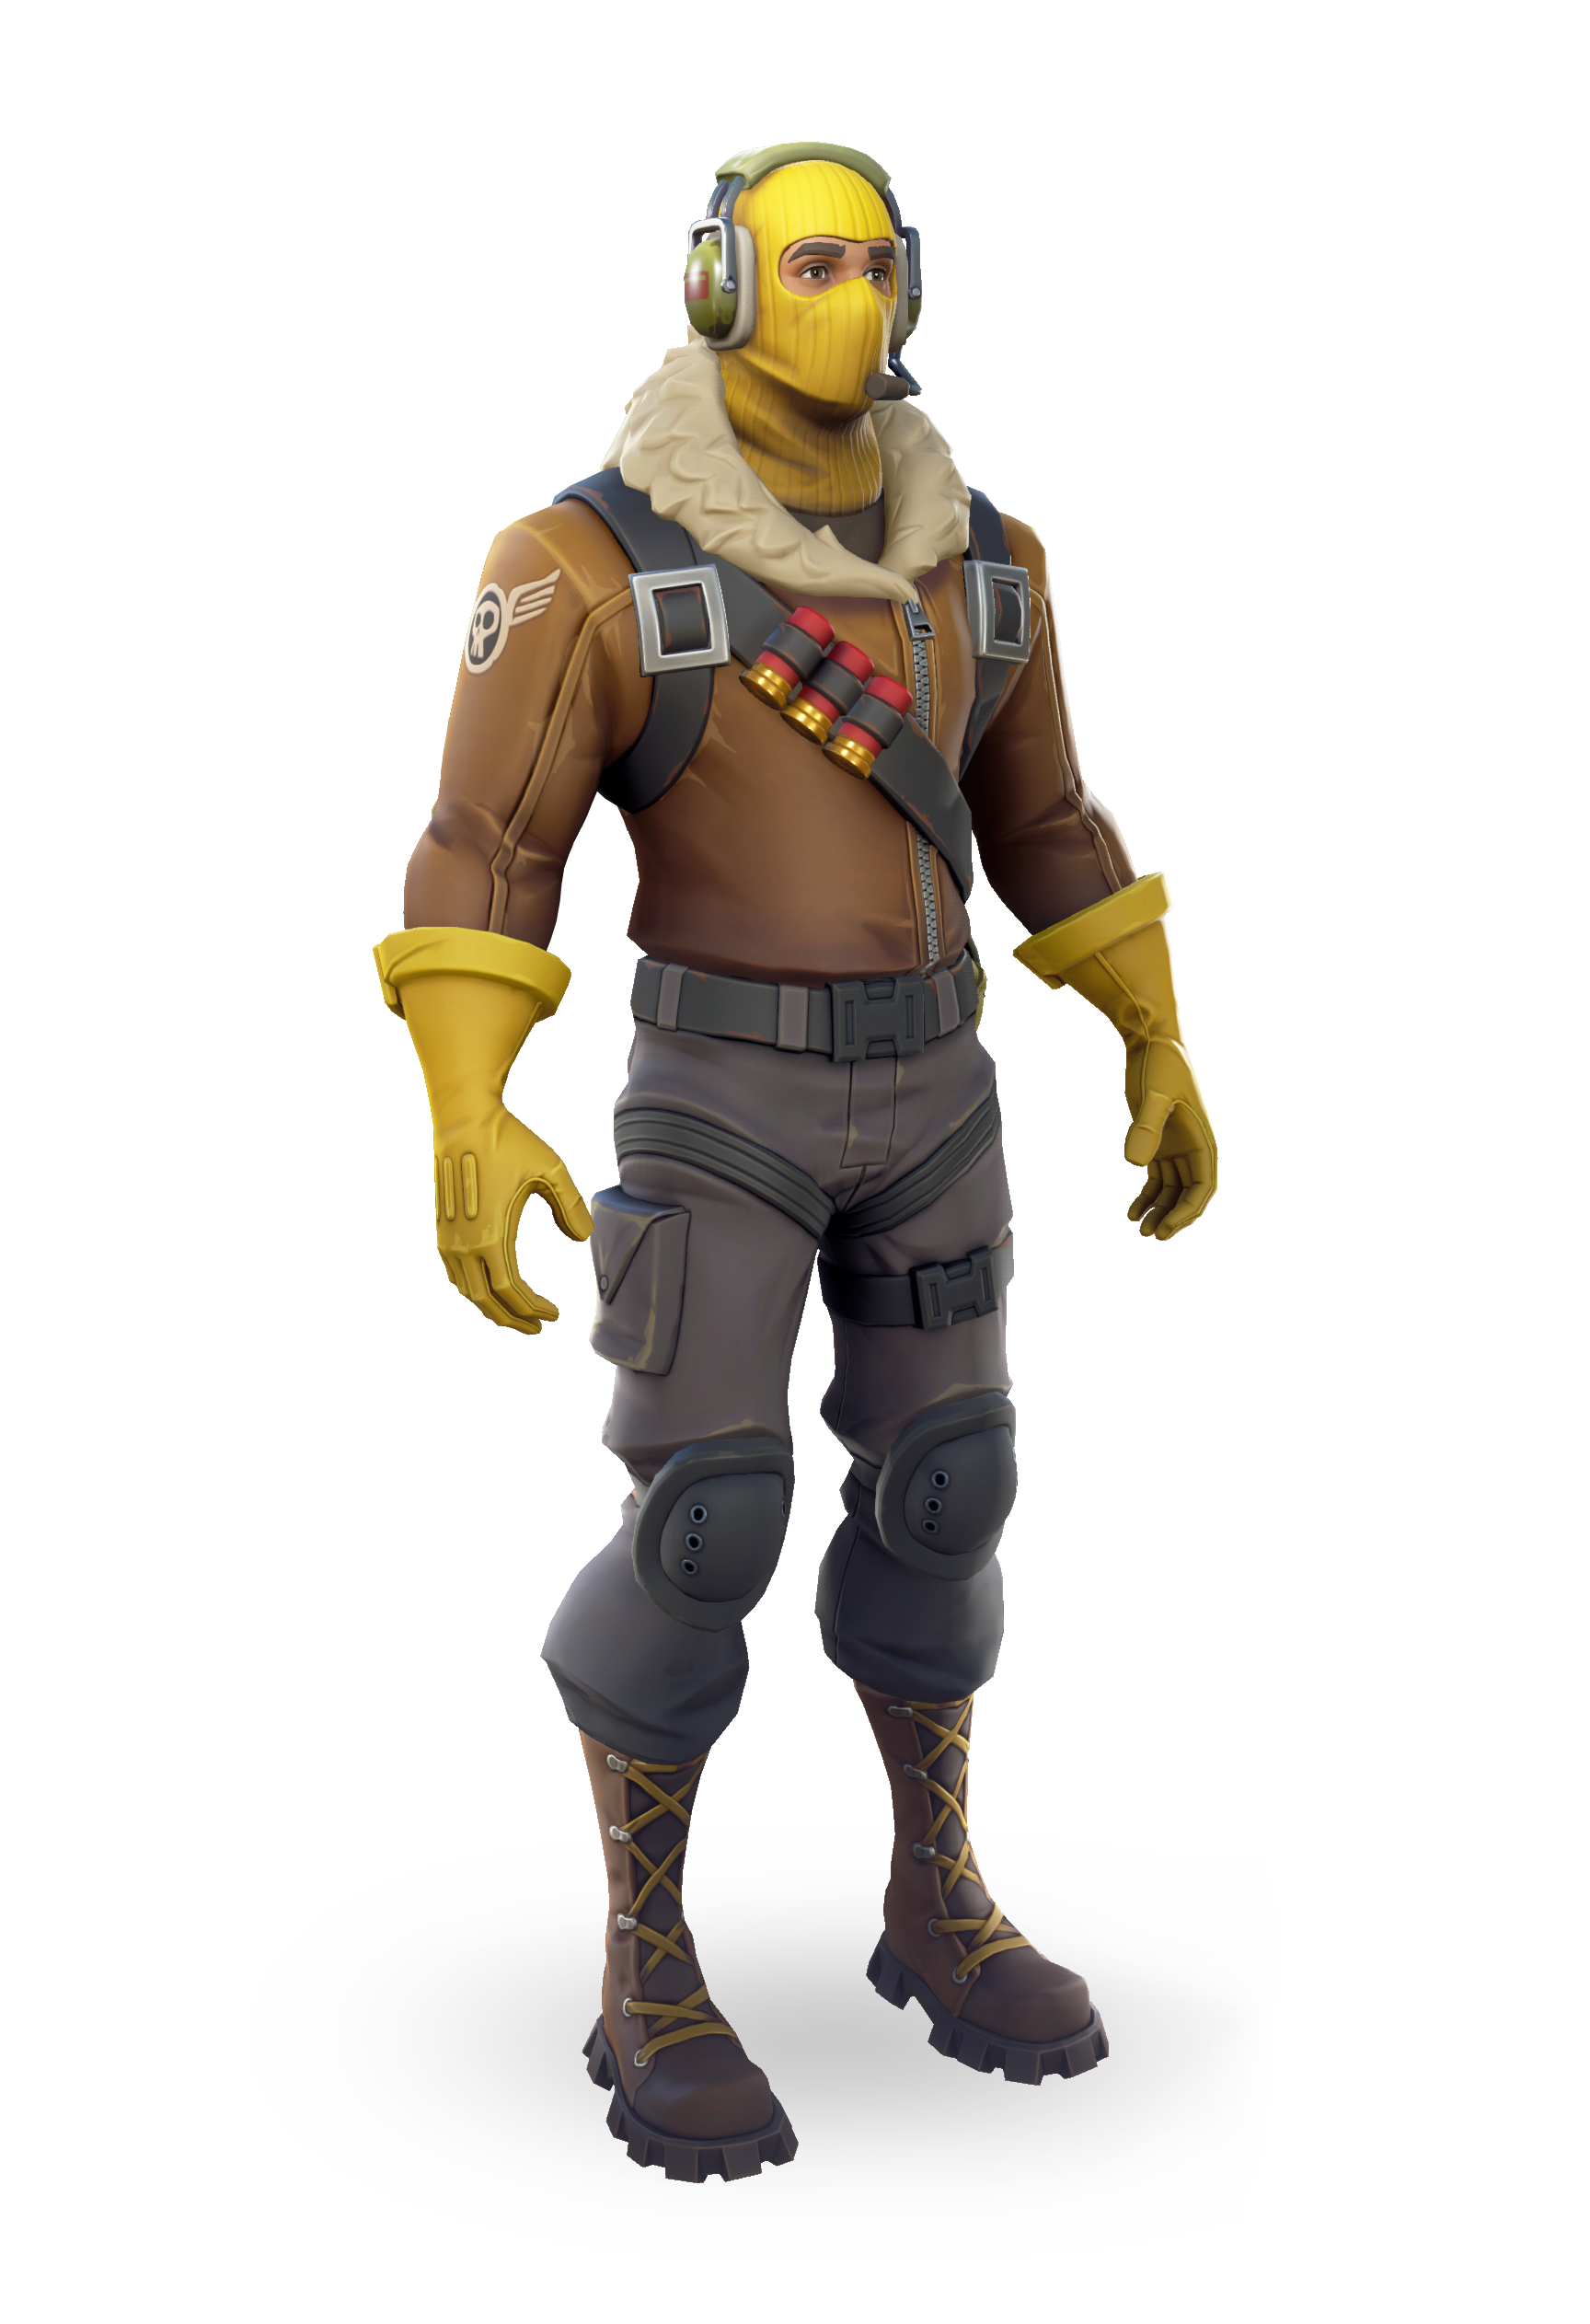 Loot crate fortnite png. Epic games soldierurskinpng